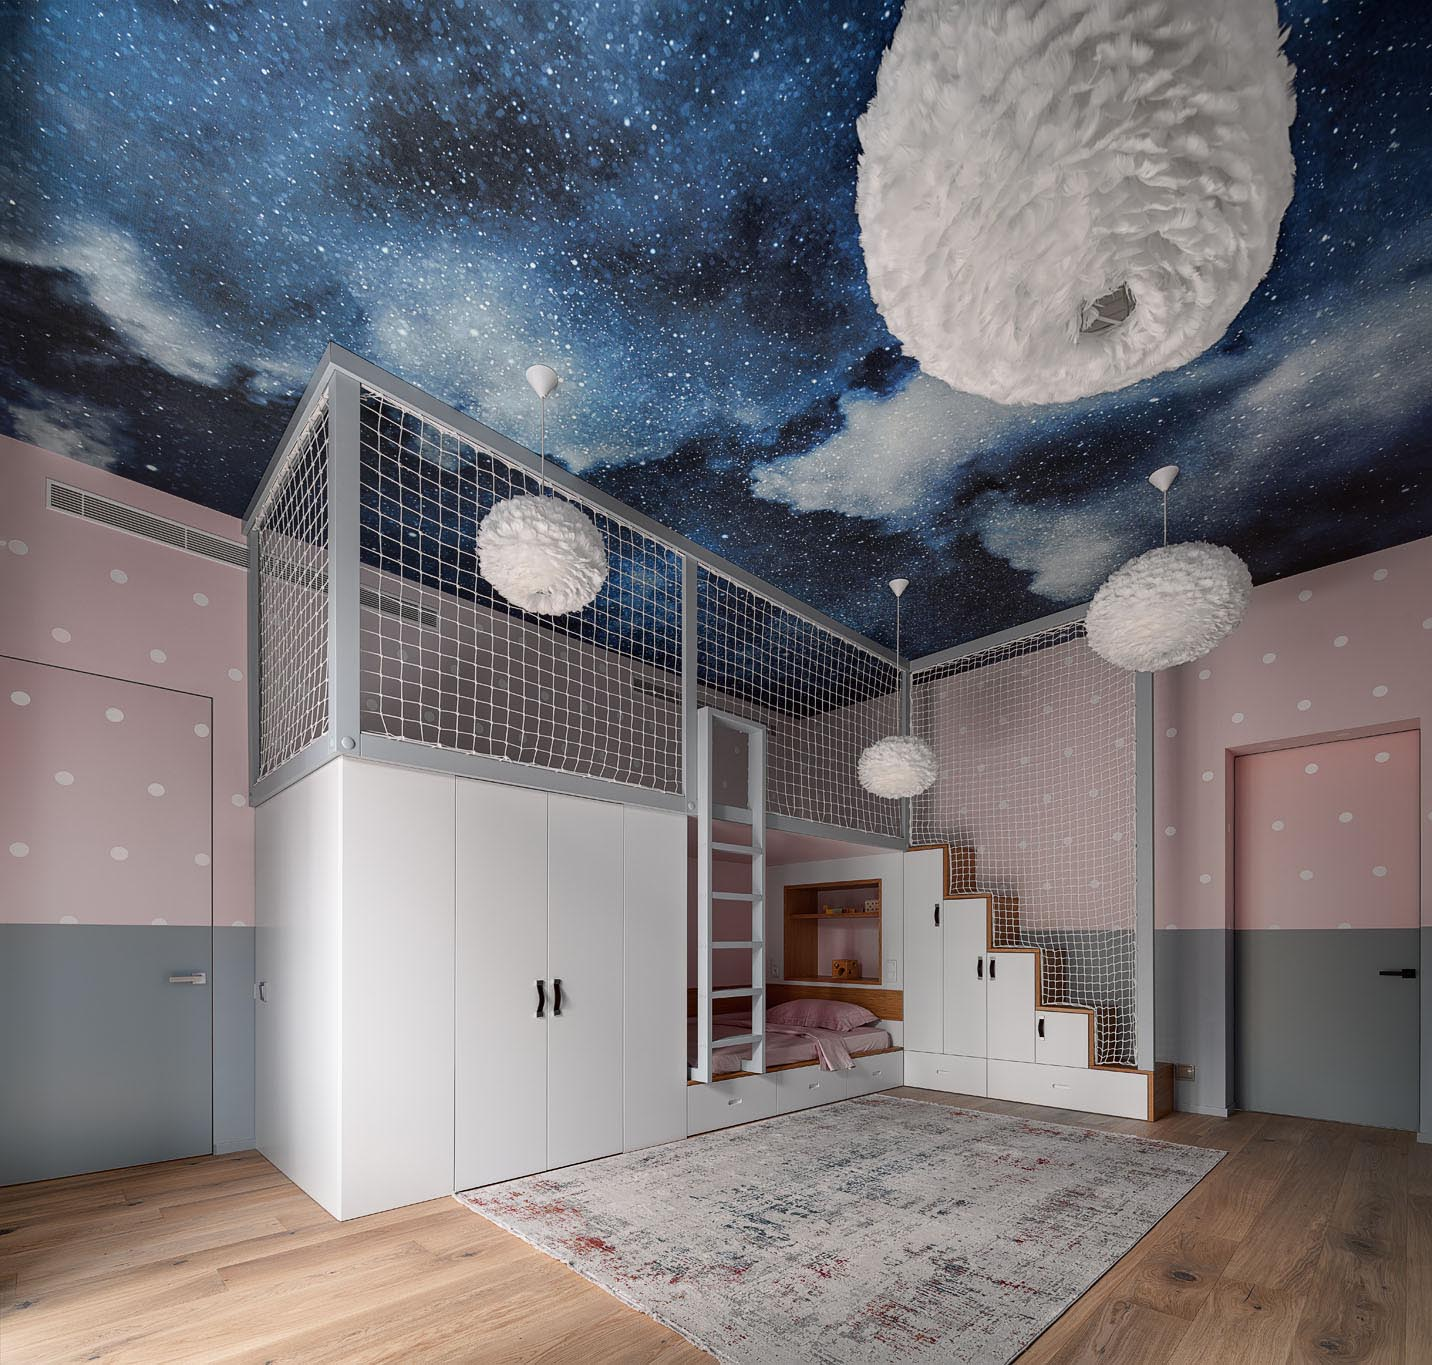 The lower section of this fun kid's bedroom includes stairs with storage and a ladder, both of which provide access to the upper loft level, while netting has been added to the frame for safety.